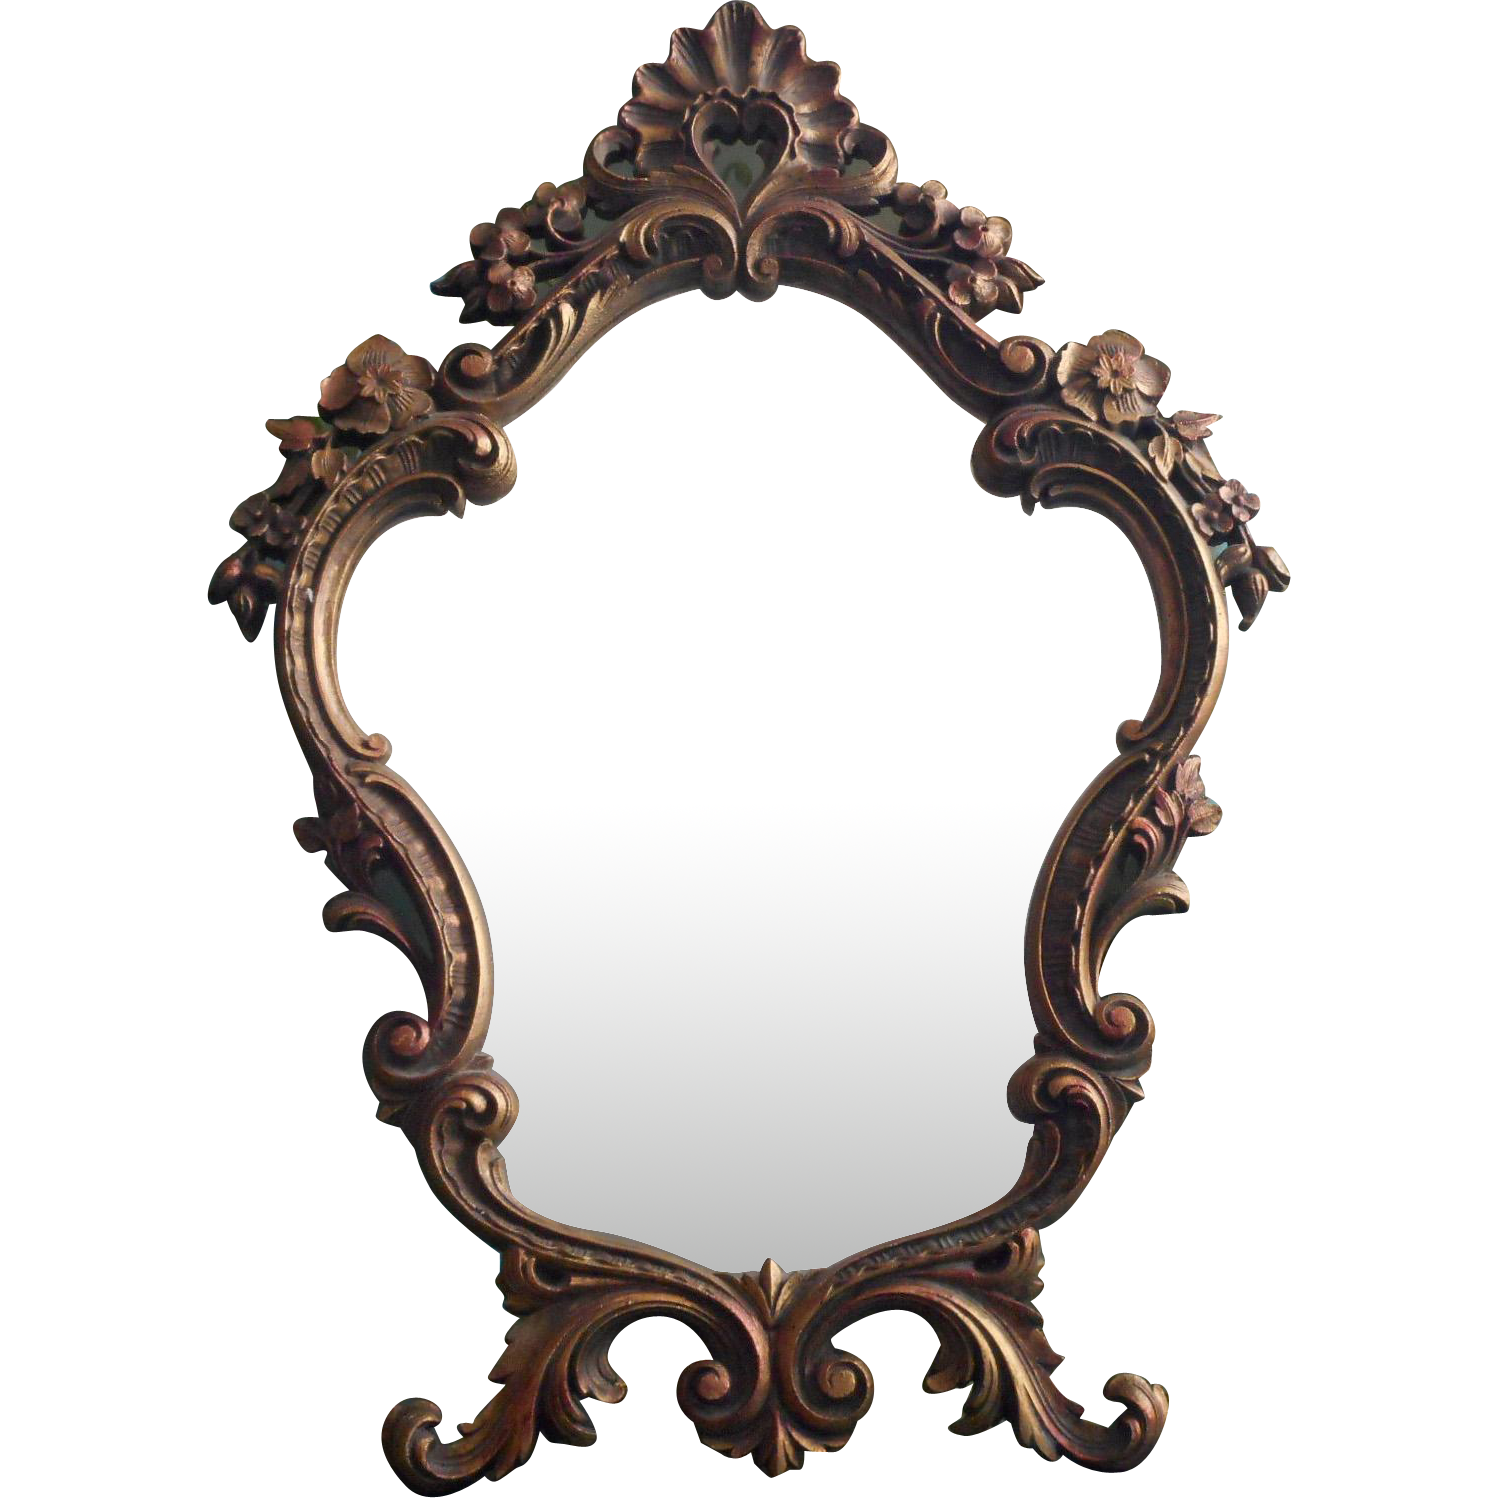 Vintage Ornate Mirror Easel Style Standing Rococo Pressed